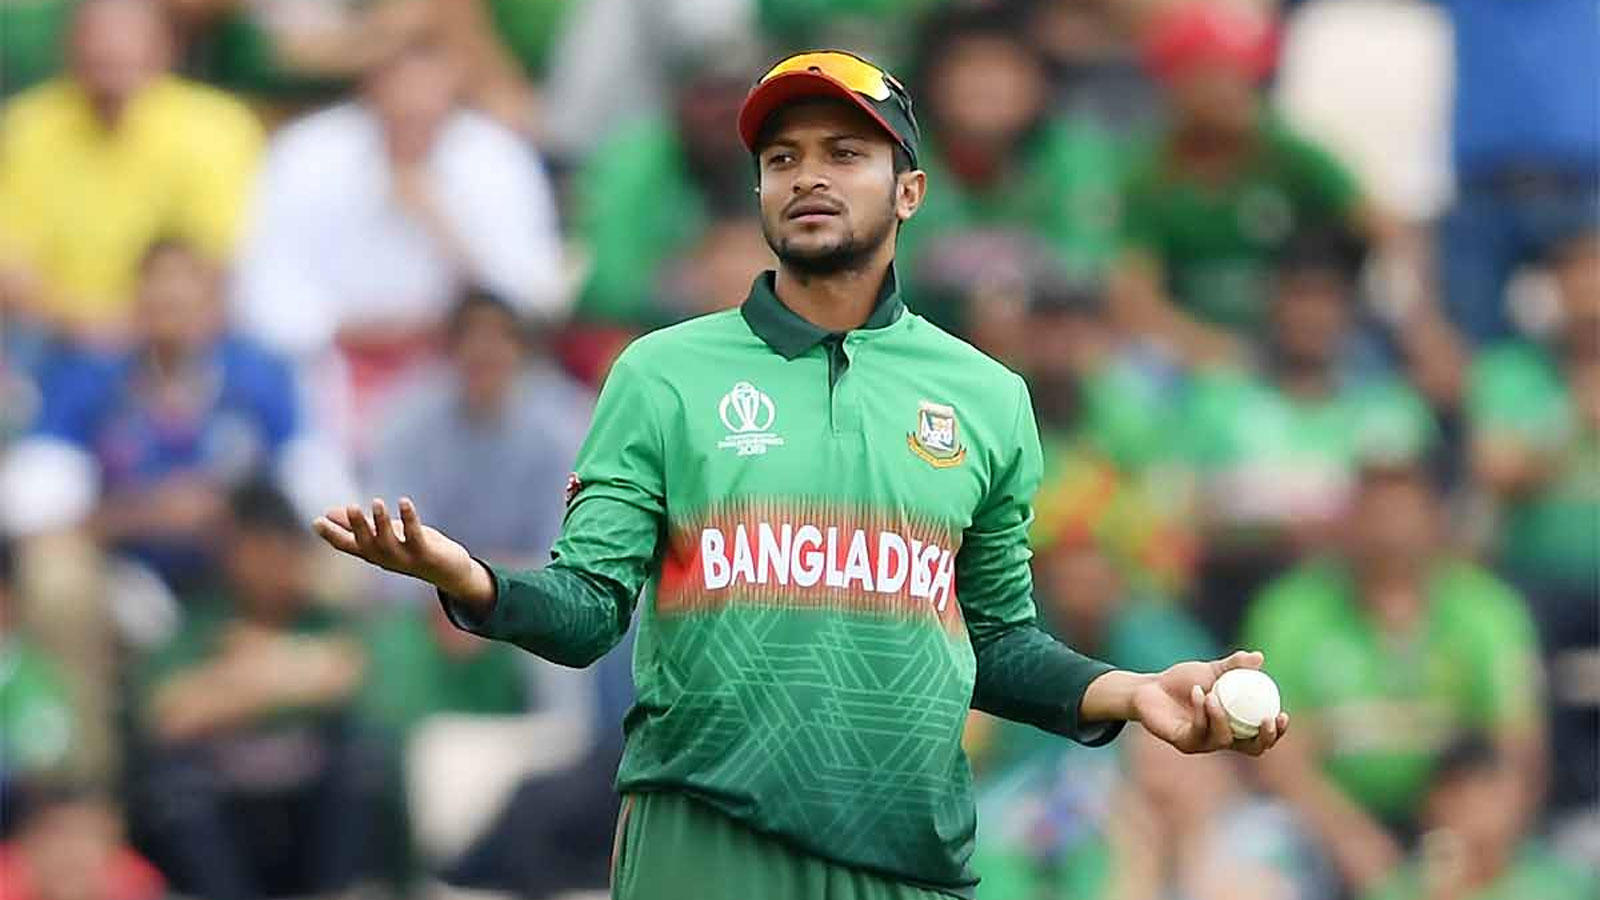 Shakib Al Hasan Receives Islamist Death Threats